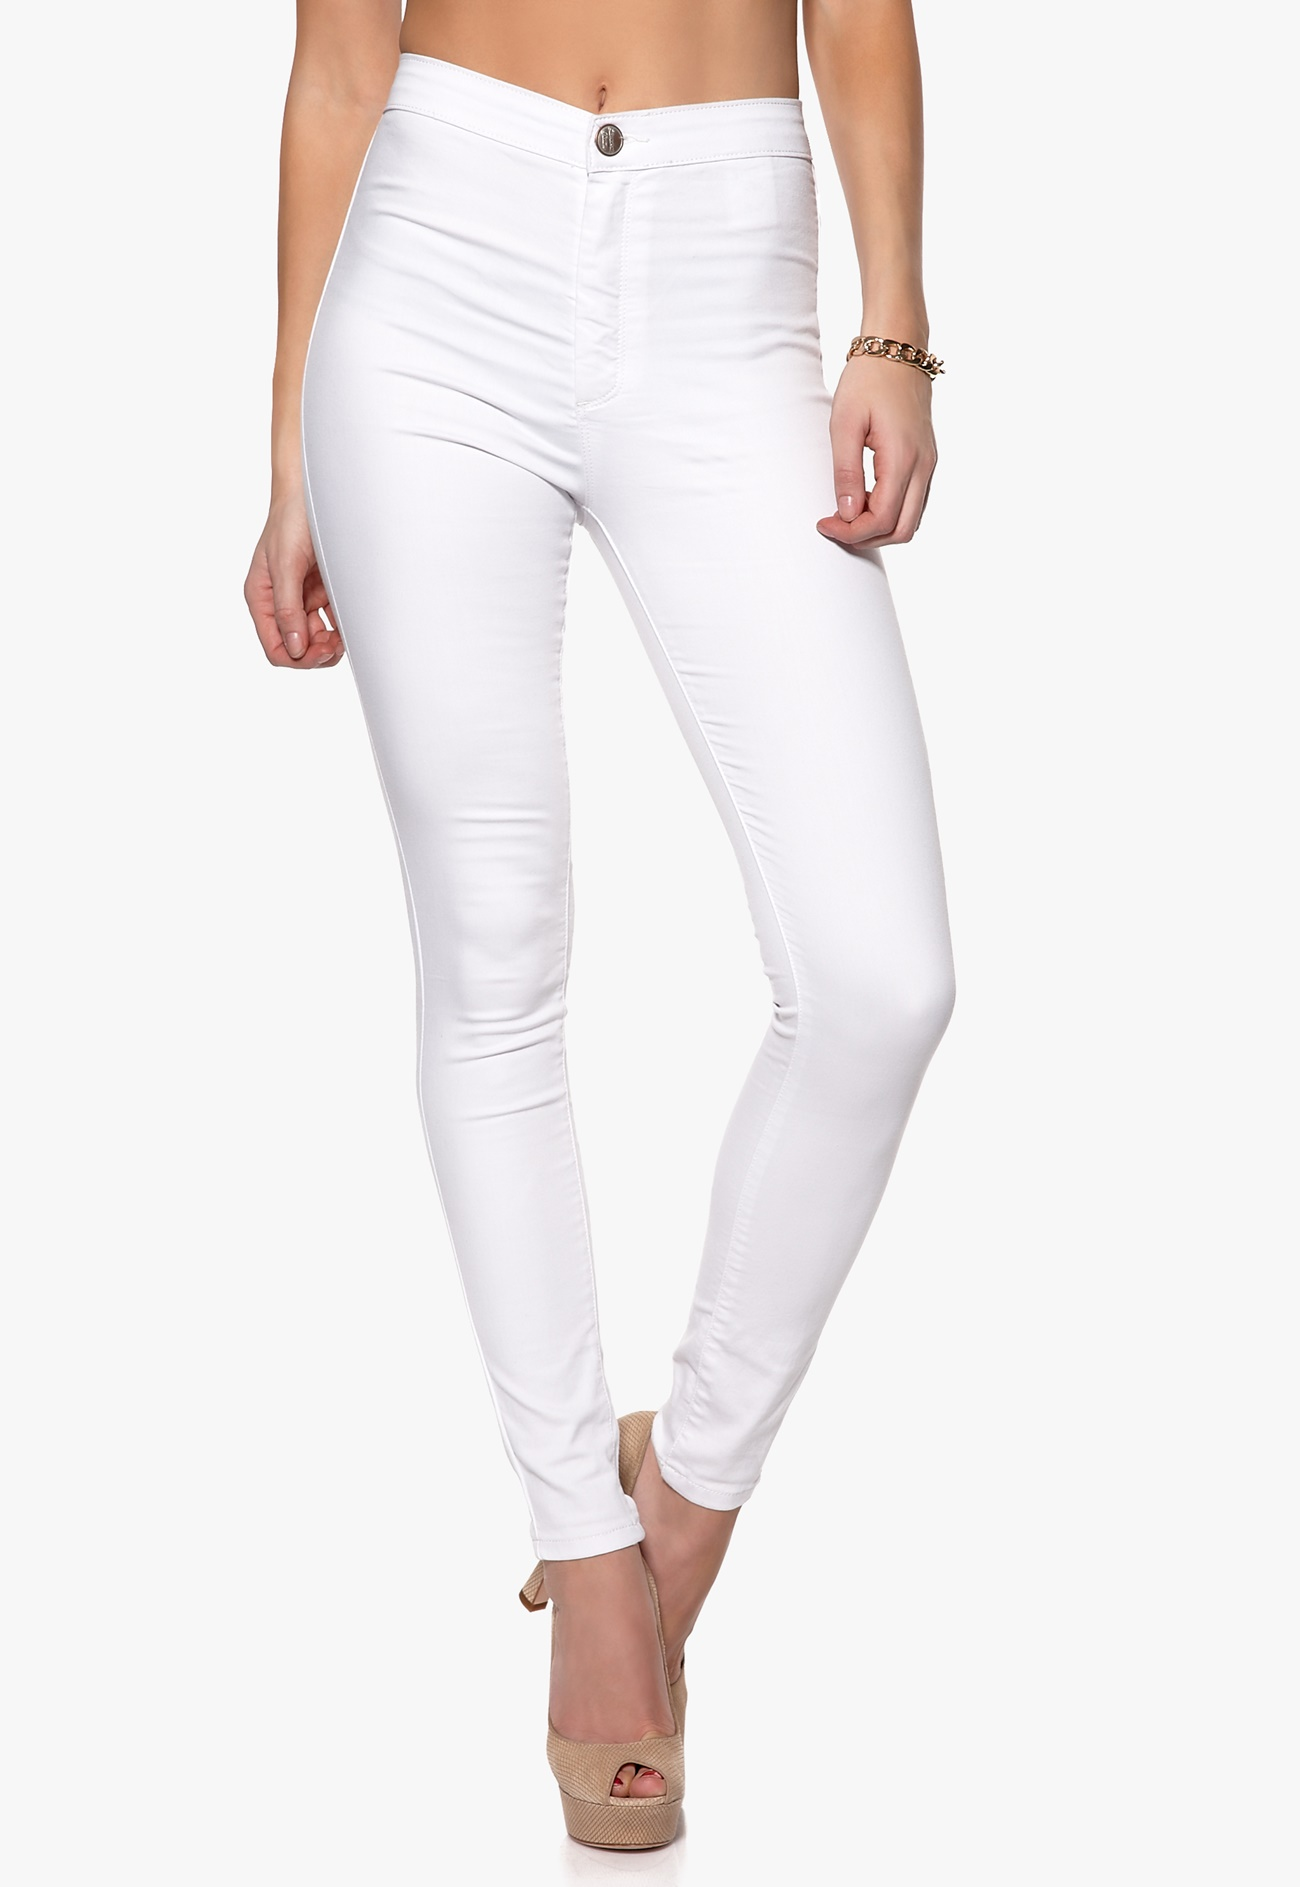 Mixed from Italy High Waisted Skinny Jeans White - Bubbleroom